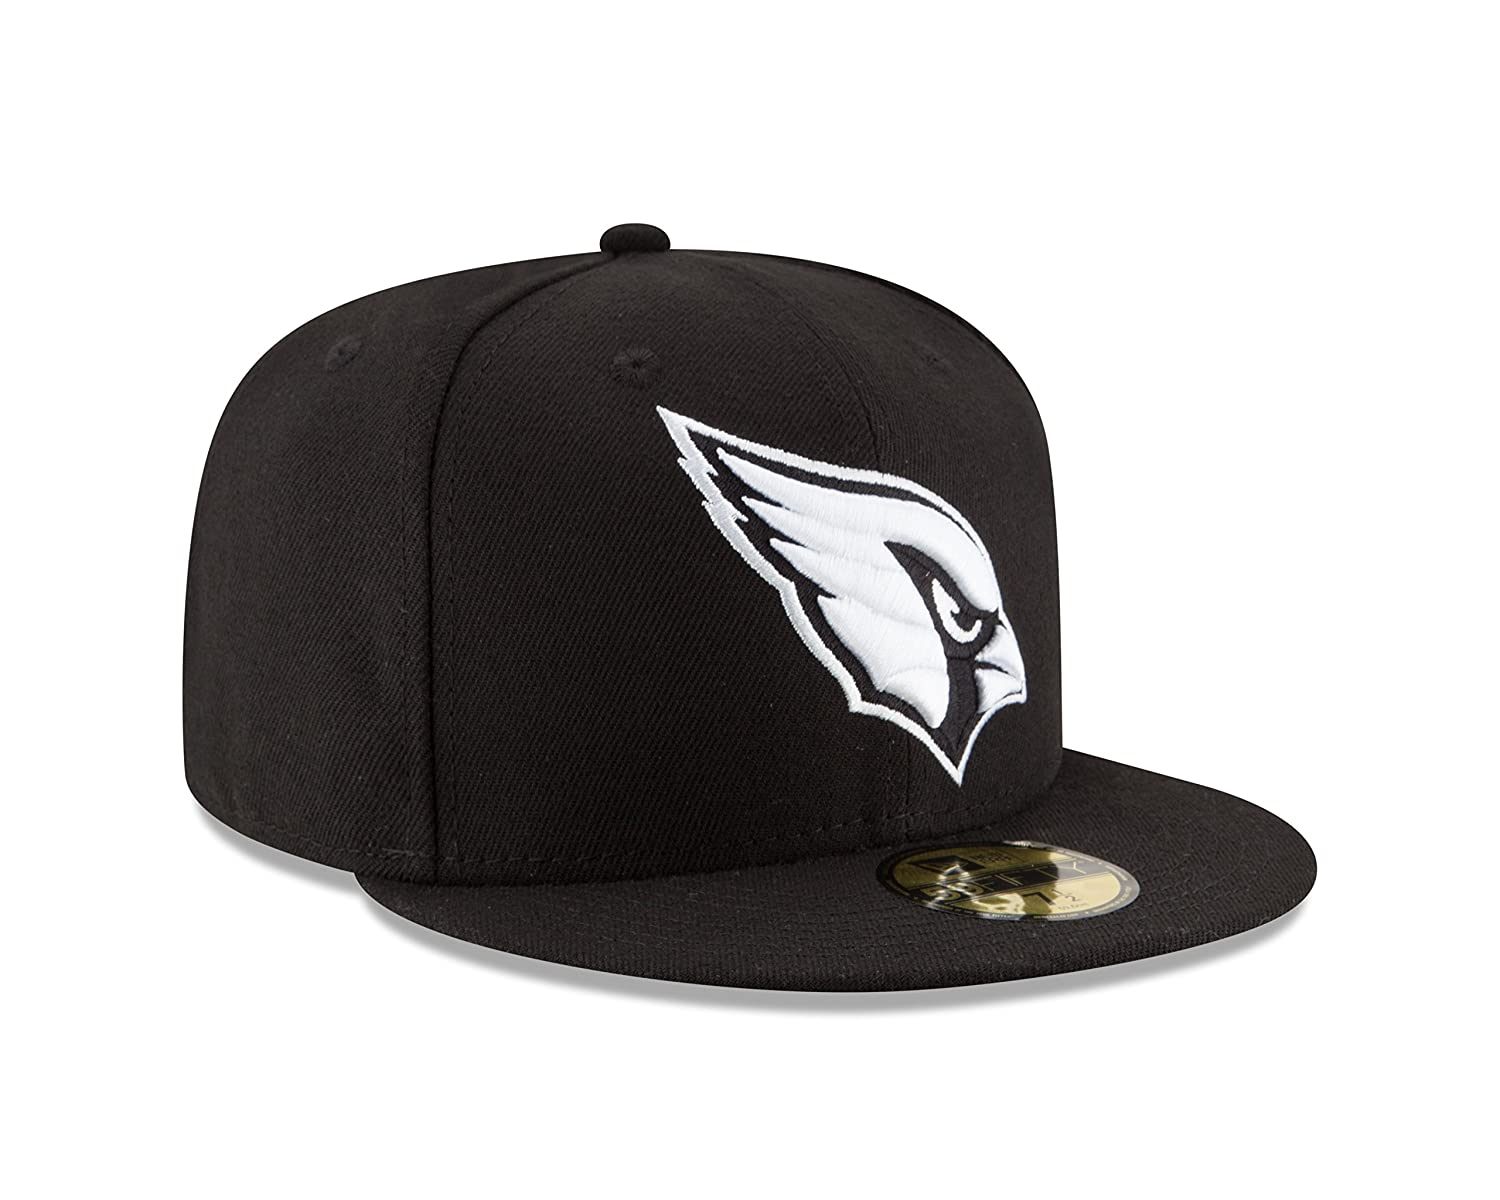 a52cdc933f7 Amazon.com   New Era NFL Men s 59Fifty Fitted Cap   Sports   Outdoors